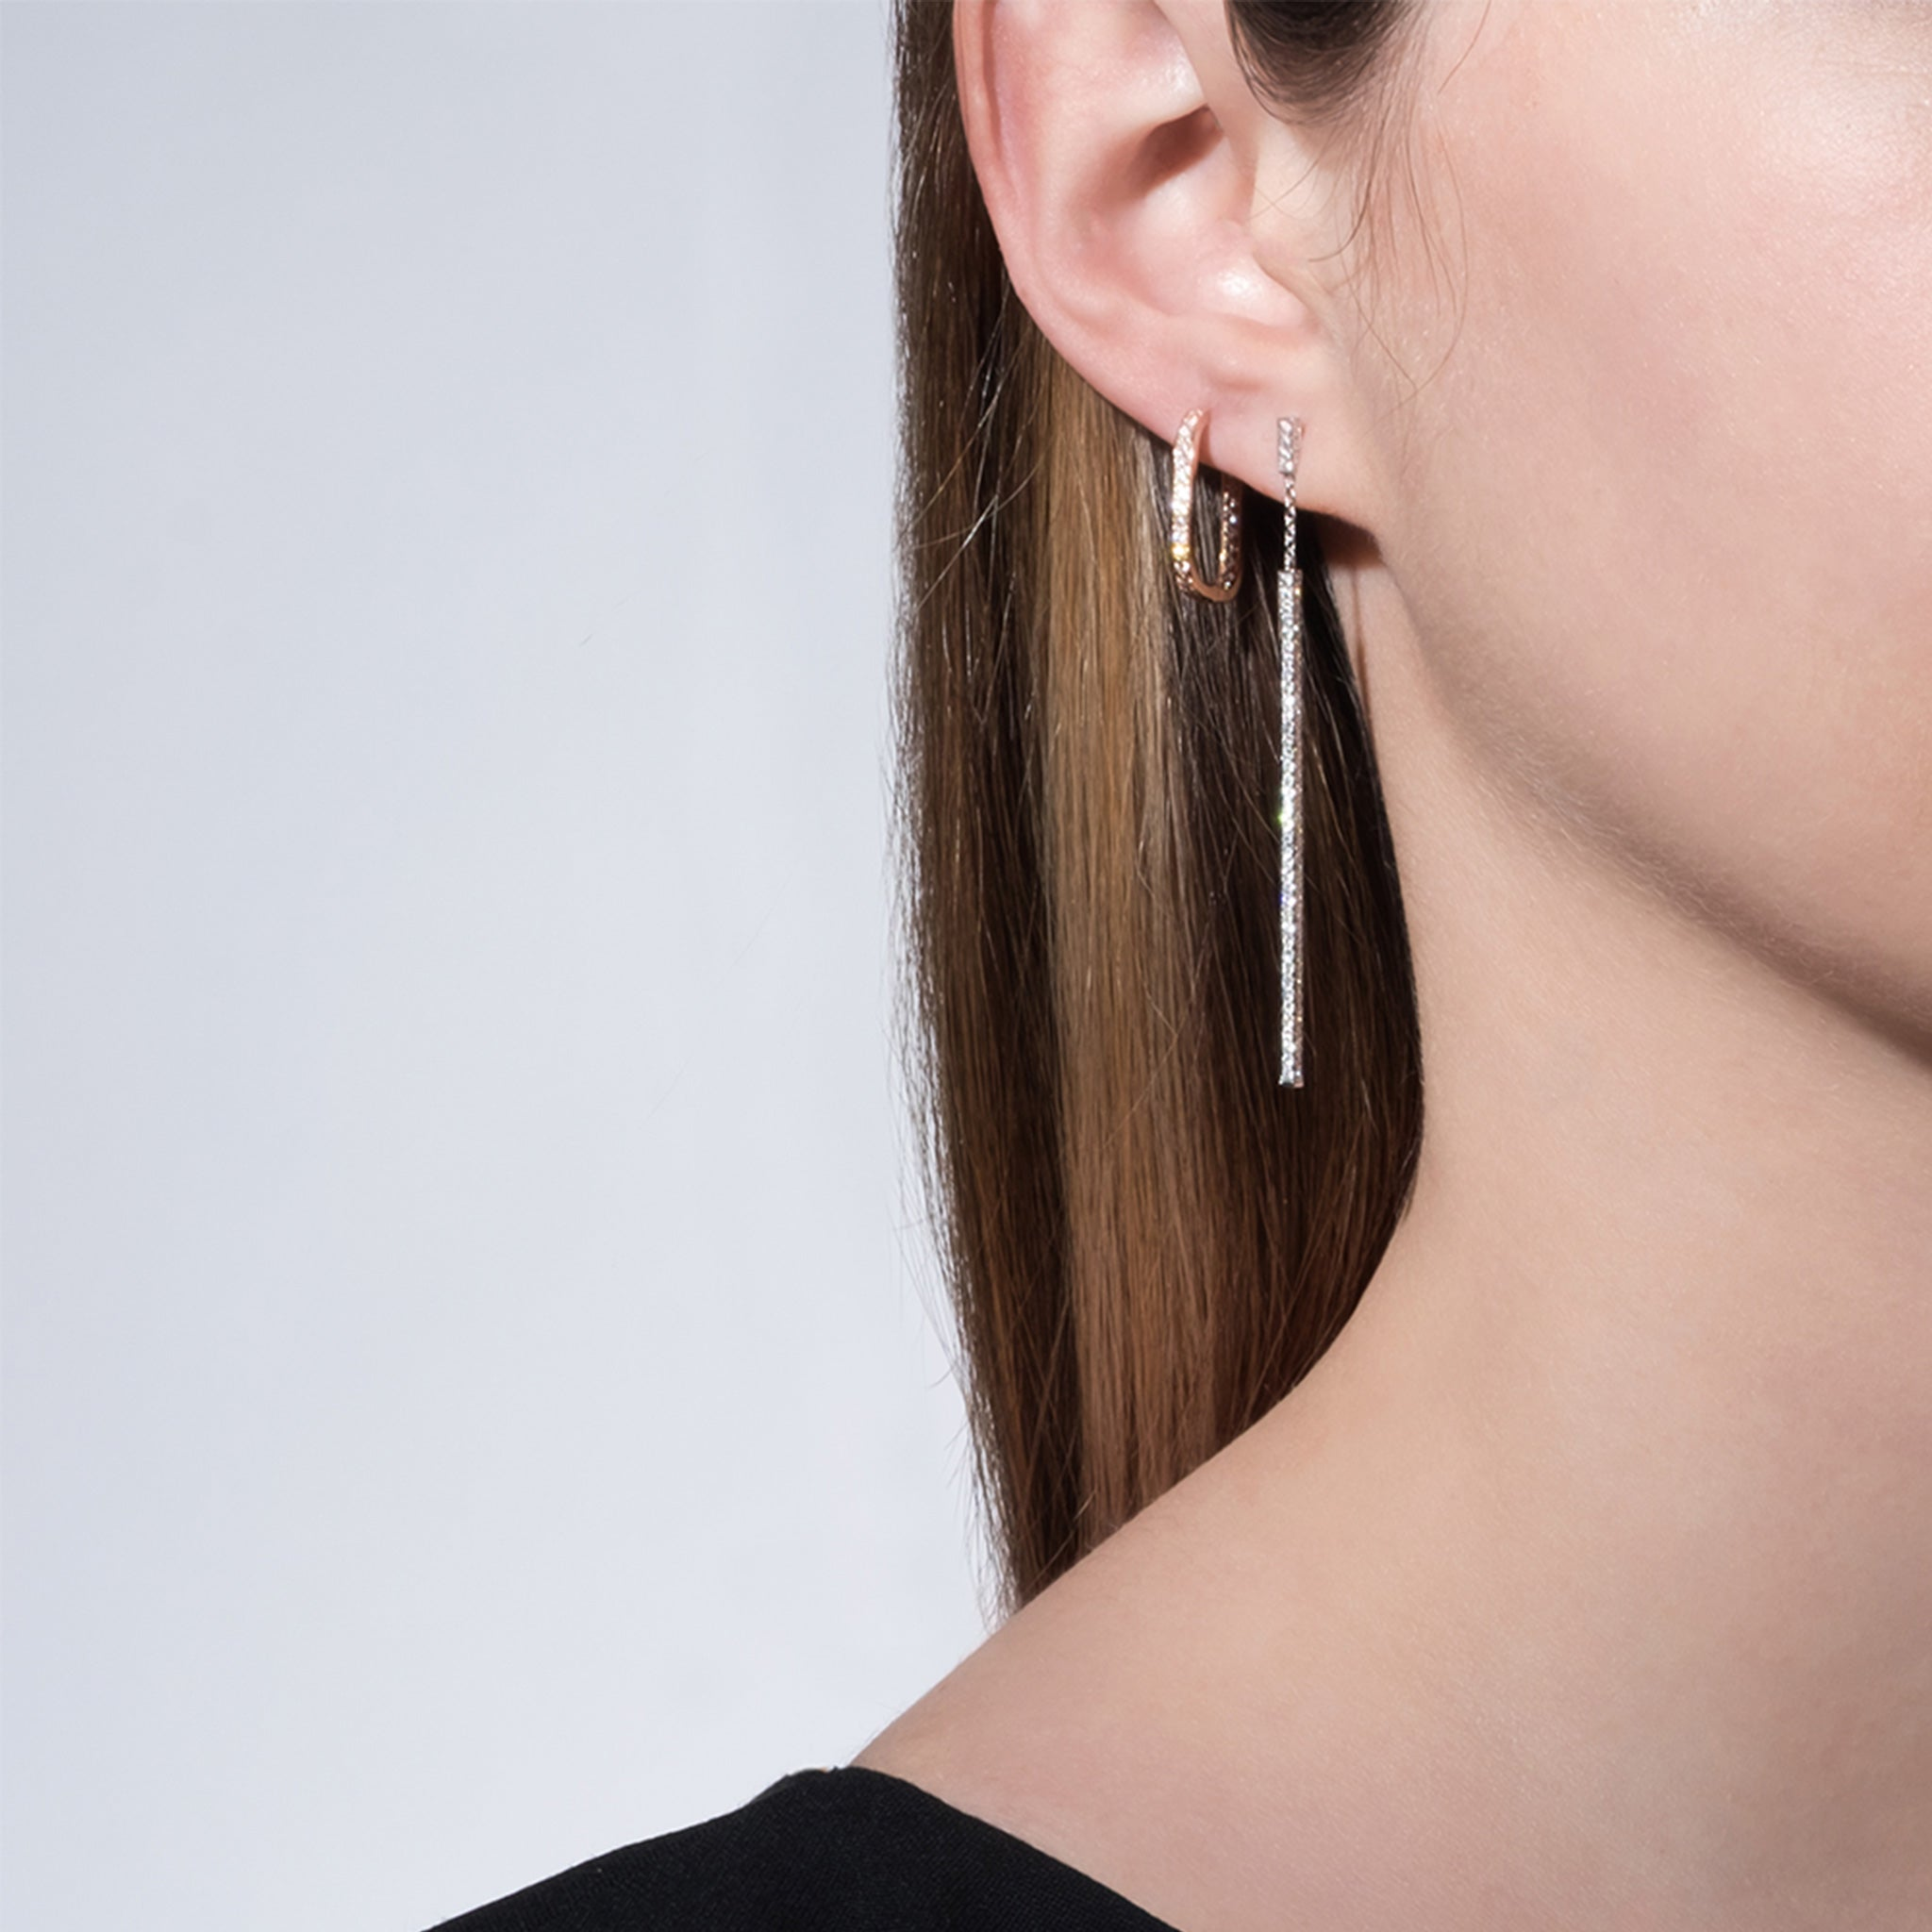 Mimi-So-Piece-Stick-Diamond-Earrings